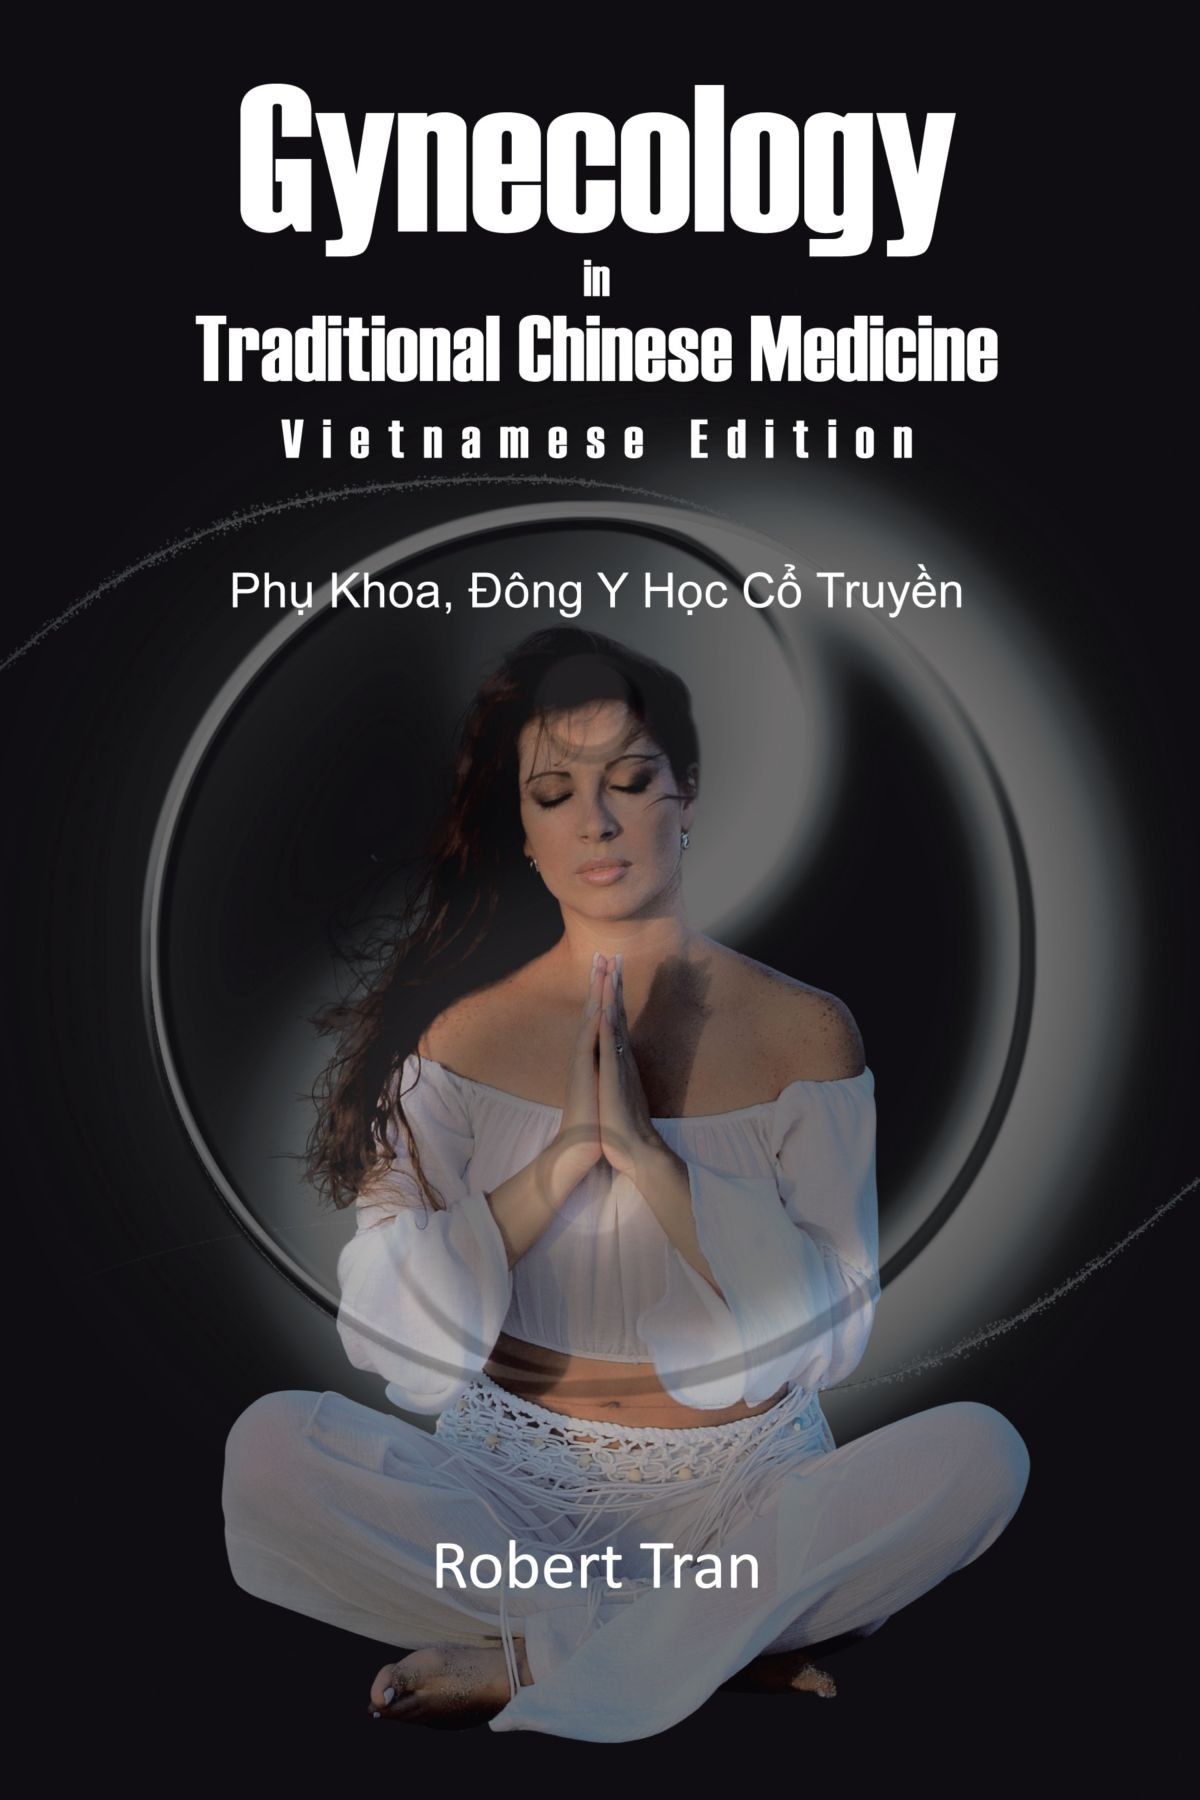 Read Online Gynecology in Traditional Chinese Medicine - Vietnamese Edition: Phu Khoa, Dong Y Hoc Co Truyen PDF